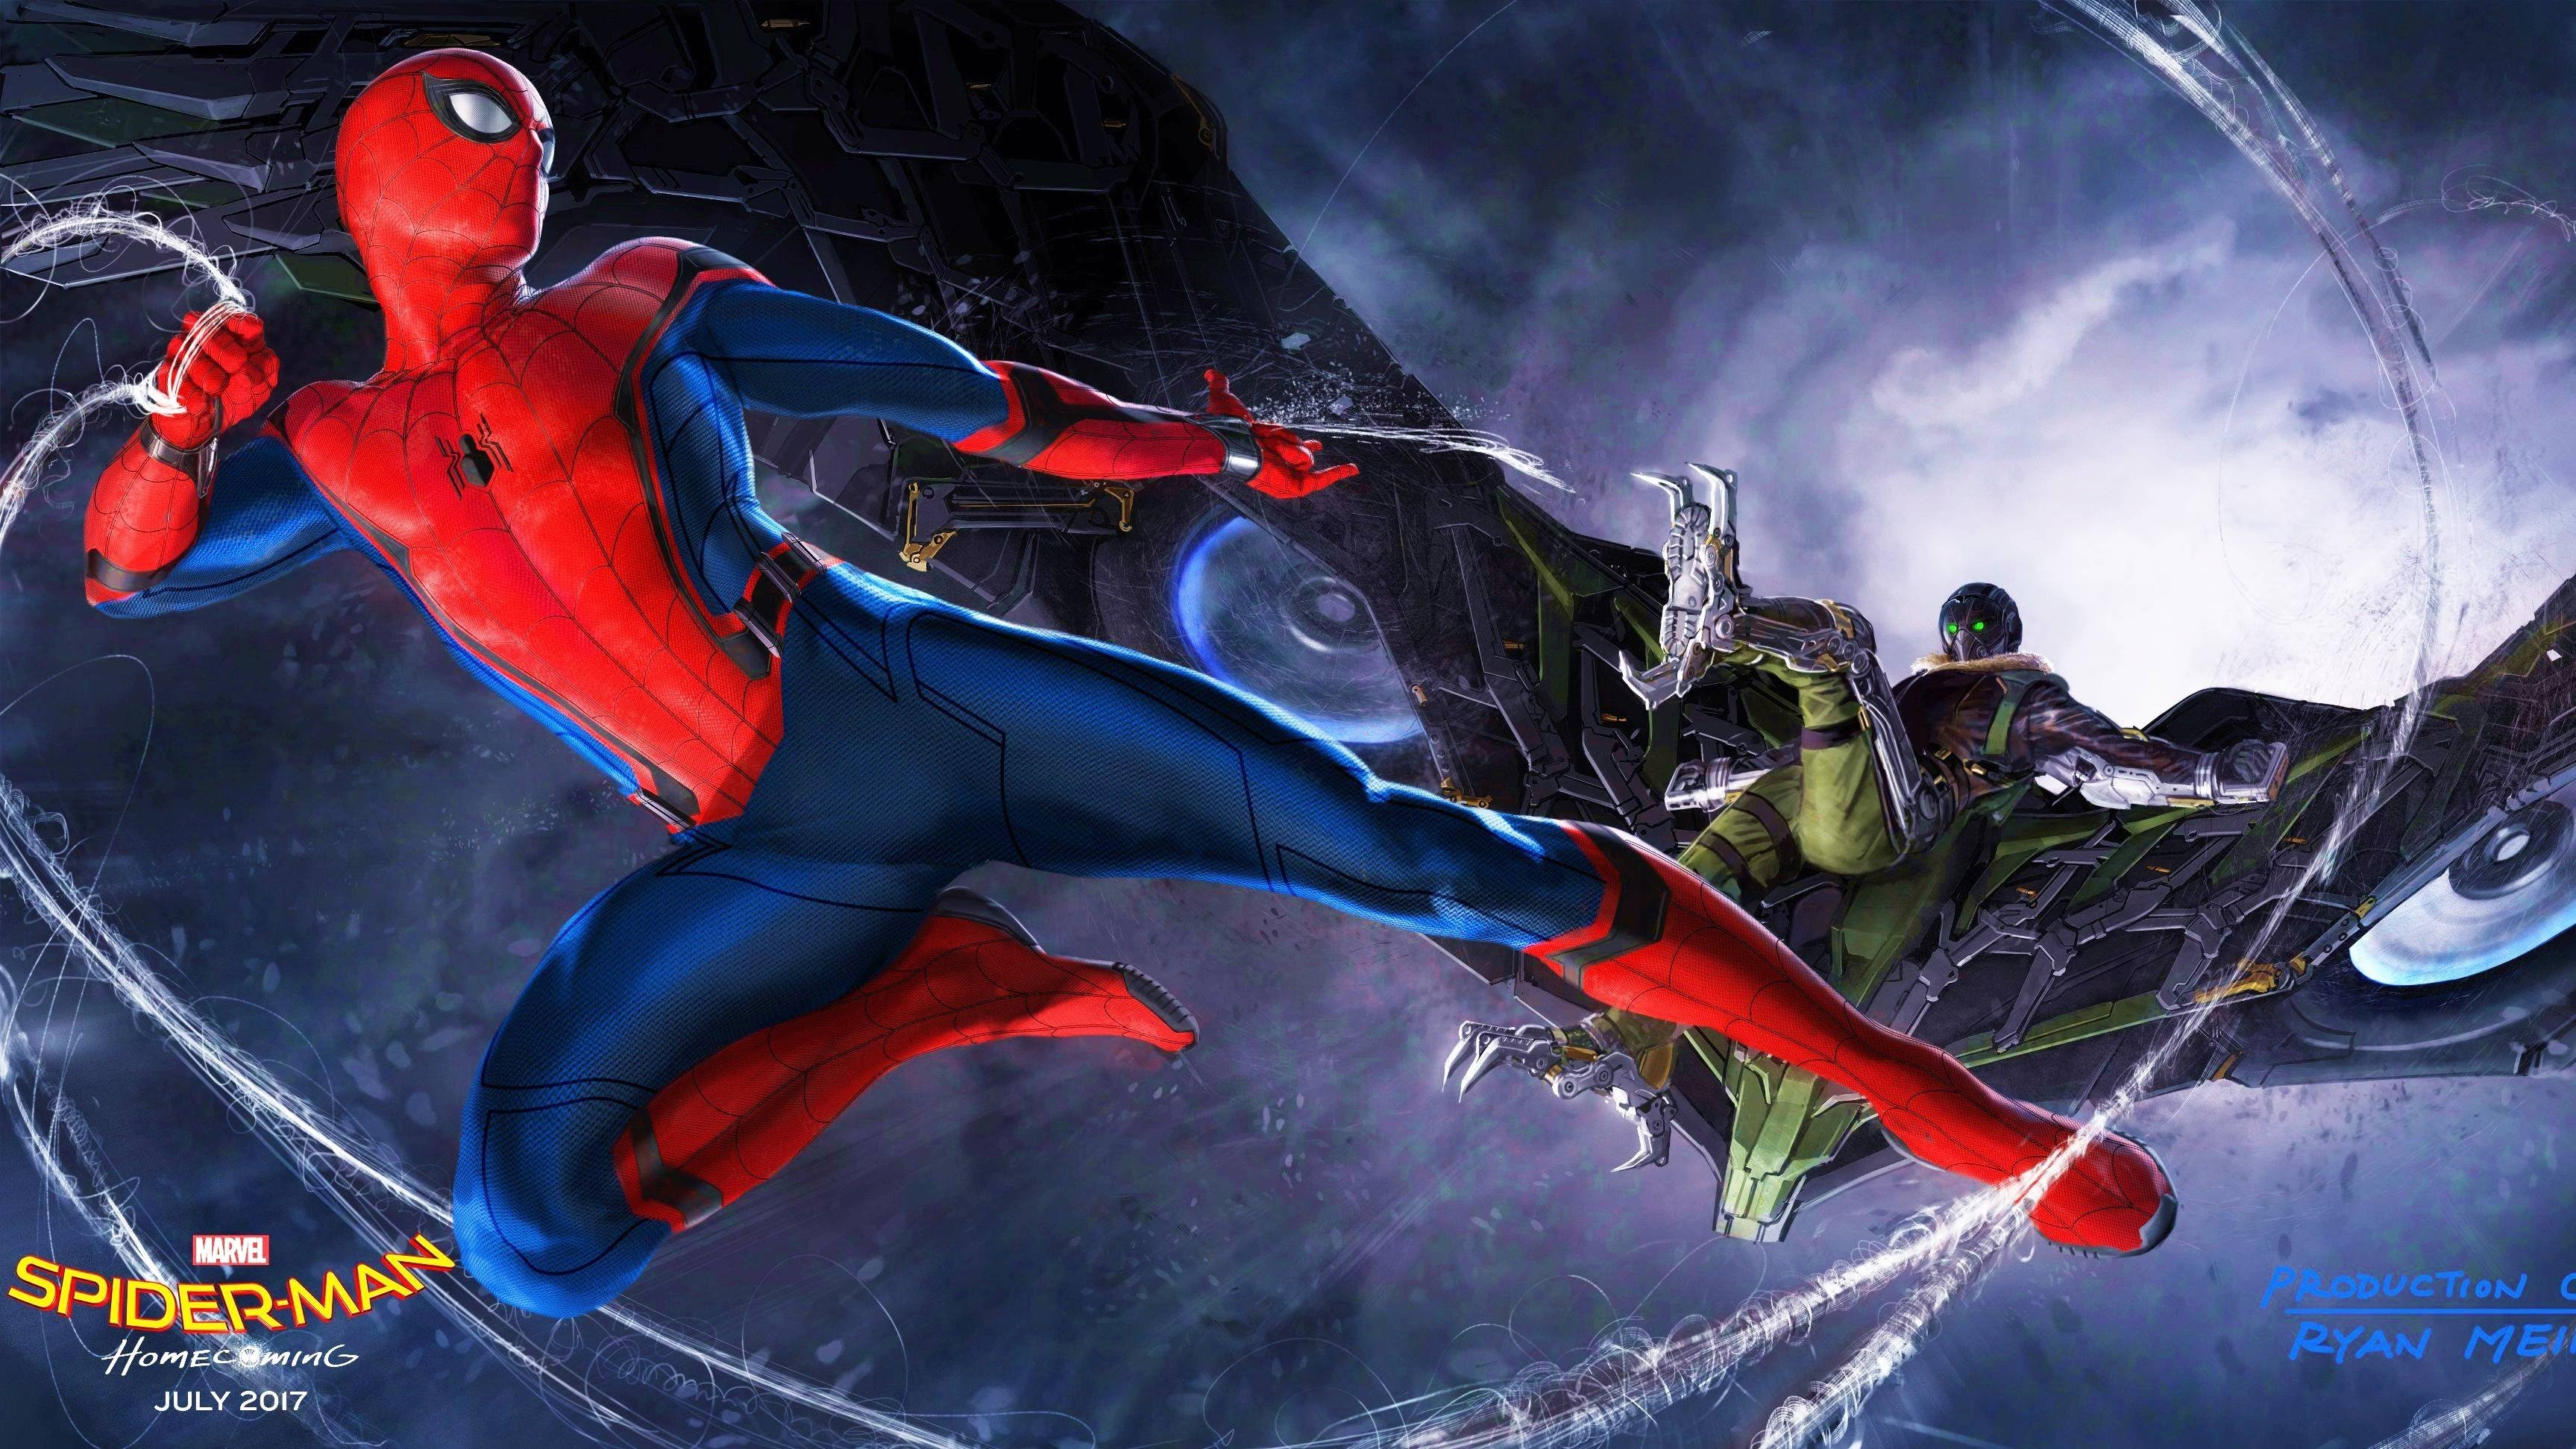 3454x1943 Spider-Man: Homecoming Backgrounds Spider-Man: Homecoming Pictures